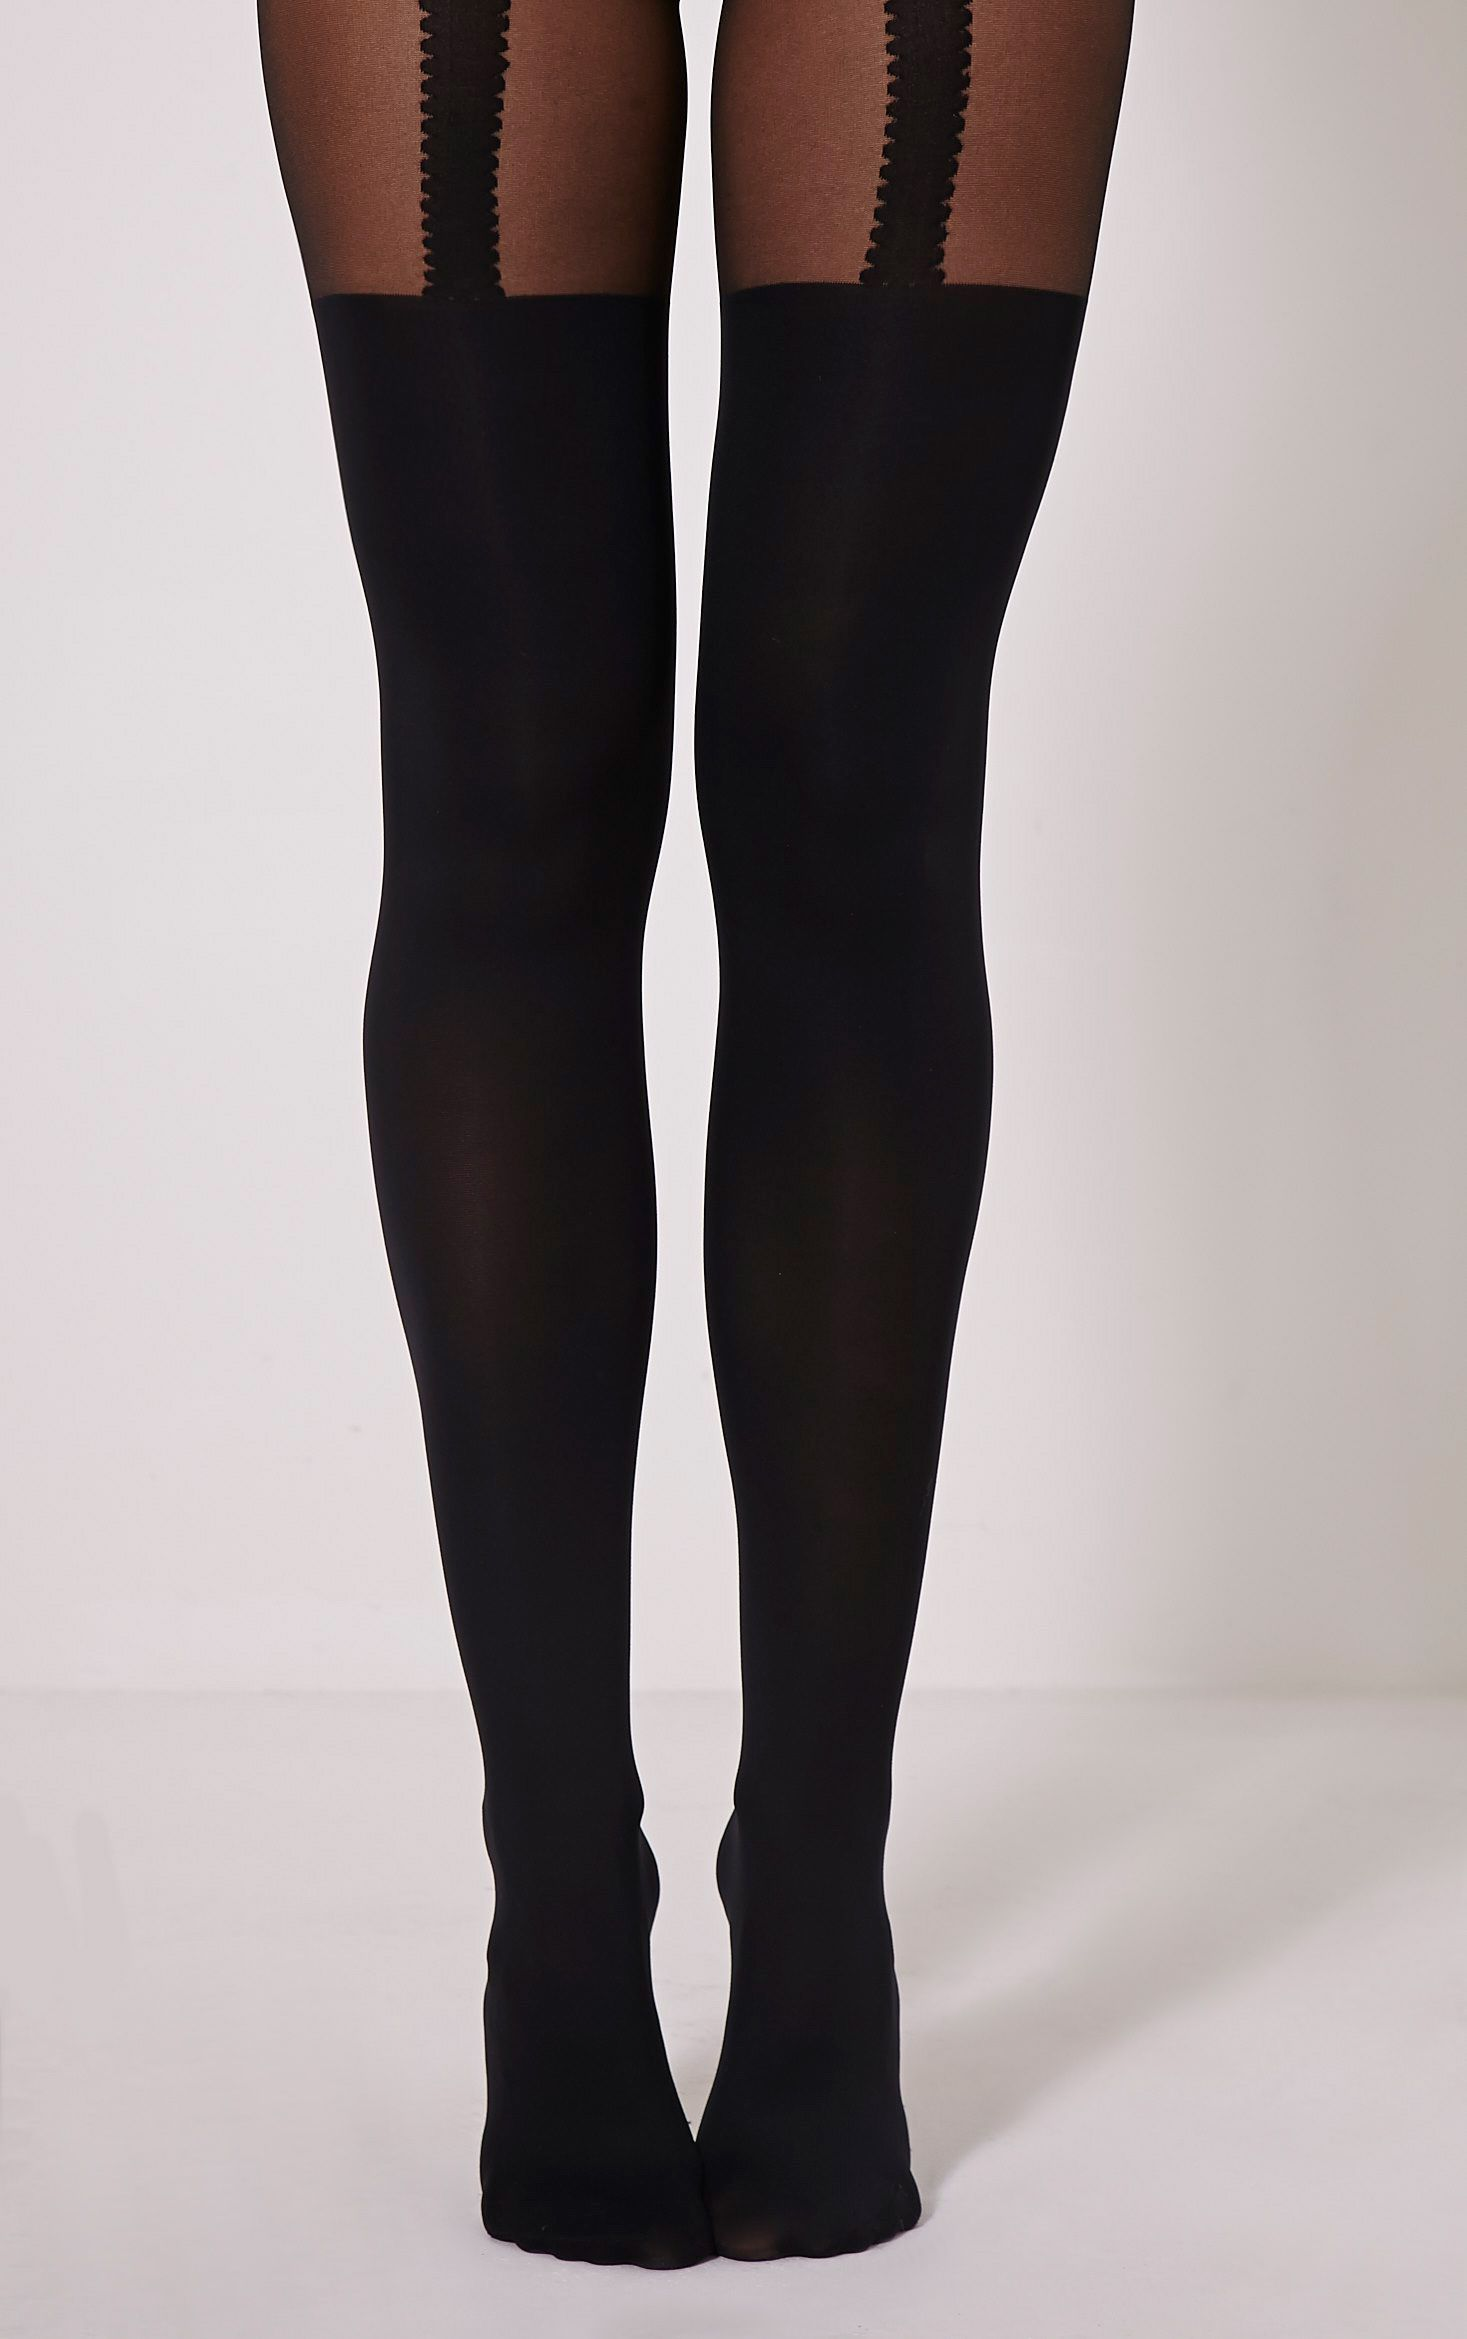 Favia Black Suspender Tights Black